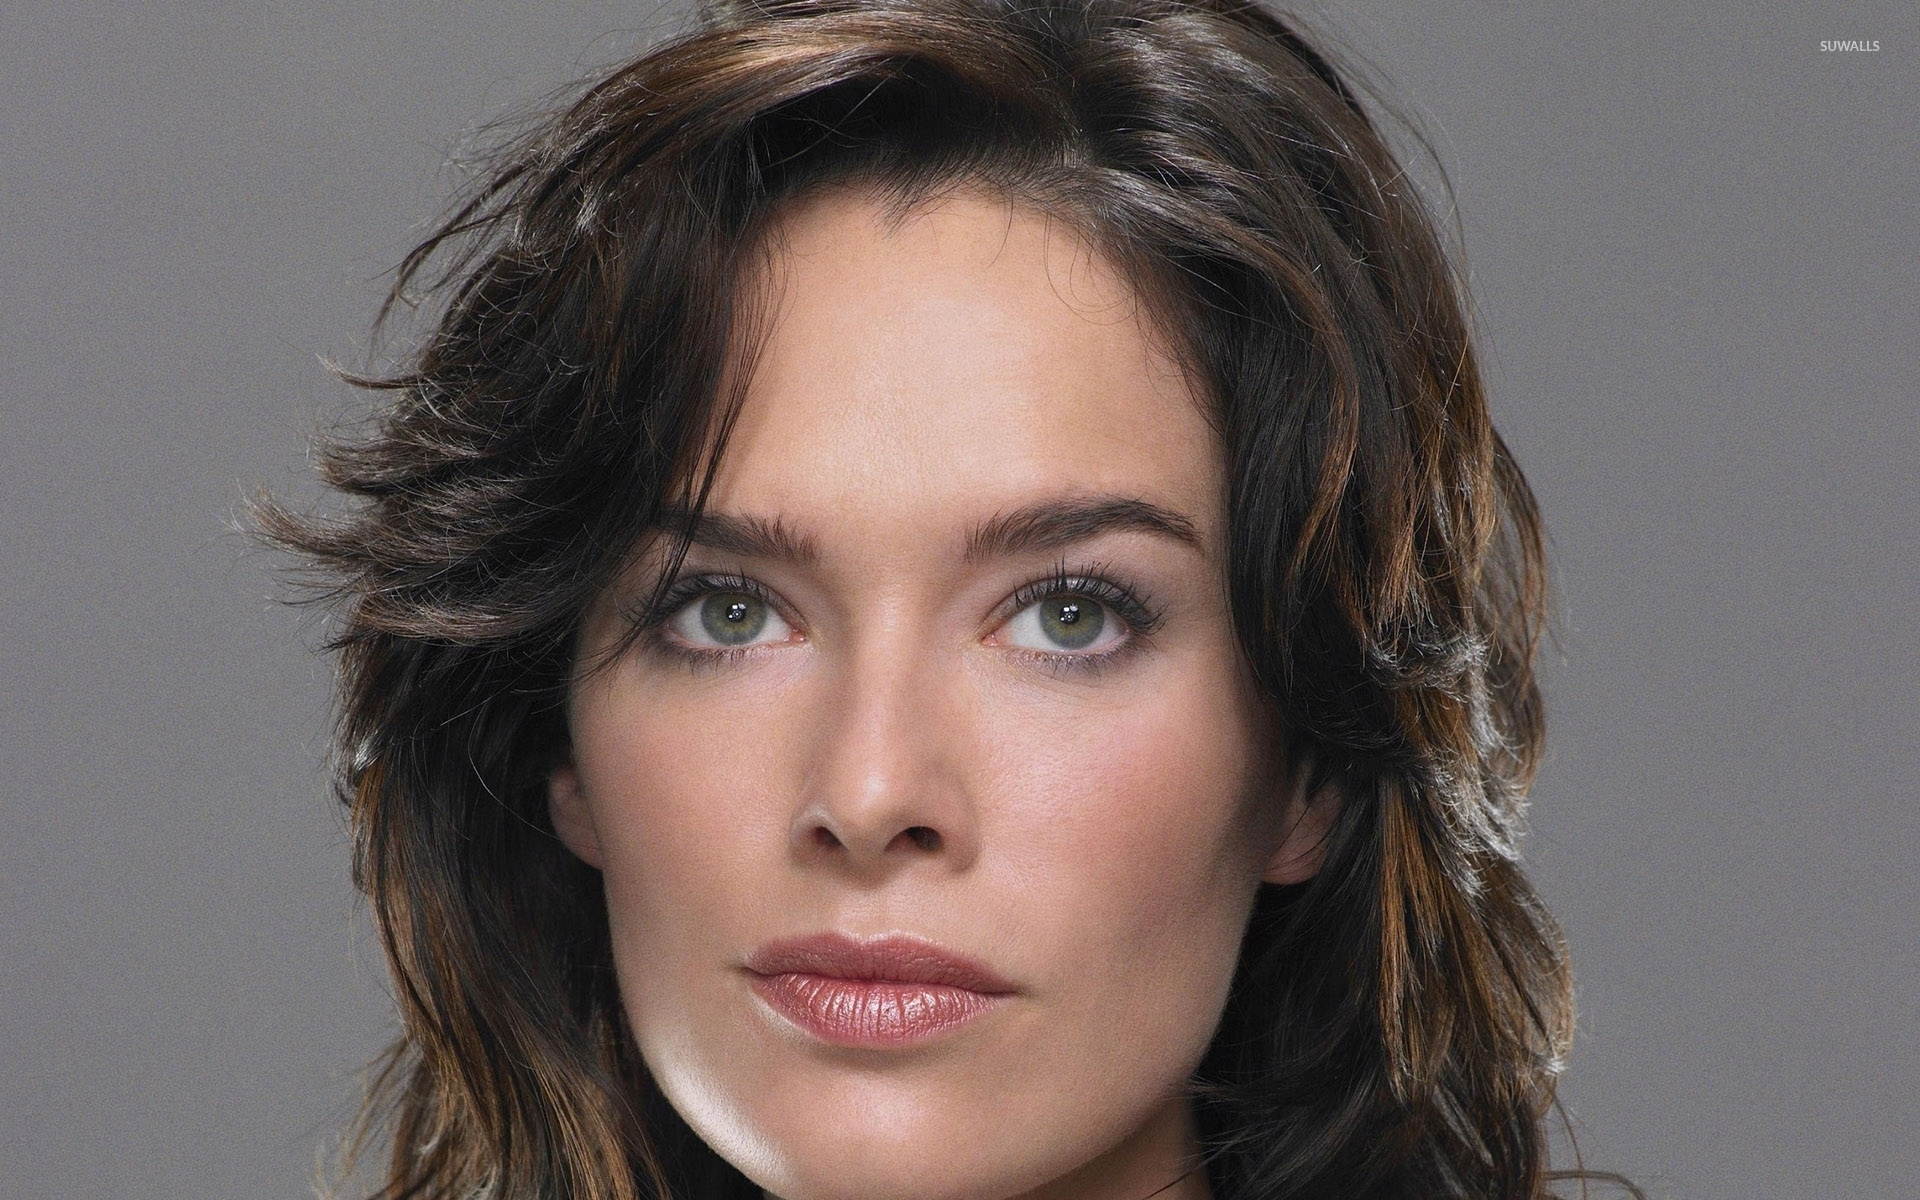 Lena headey 7 wallpaper celebrity wallpapers 34191